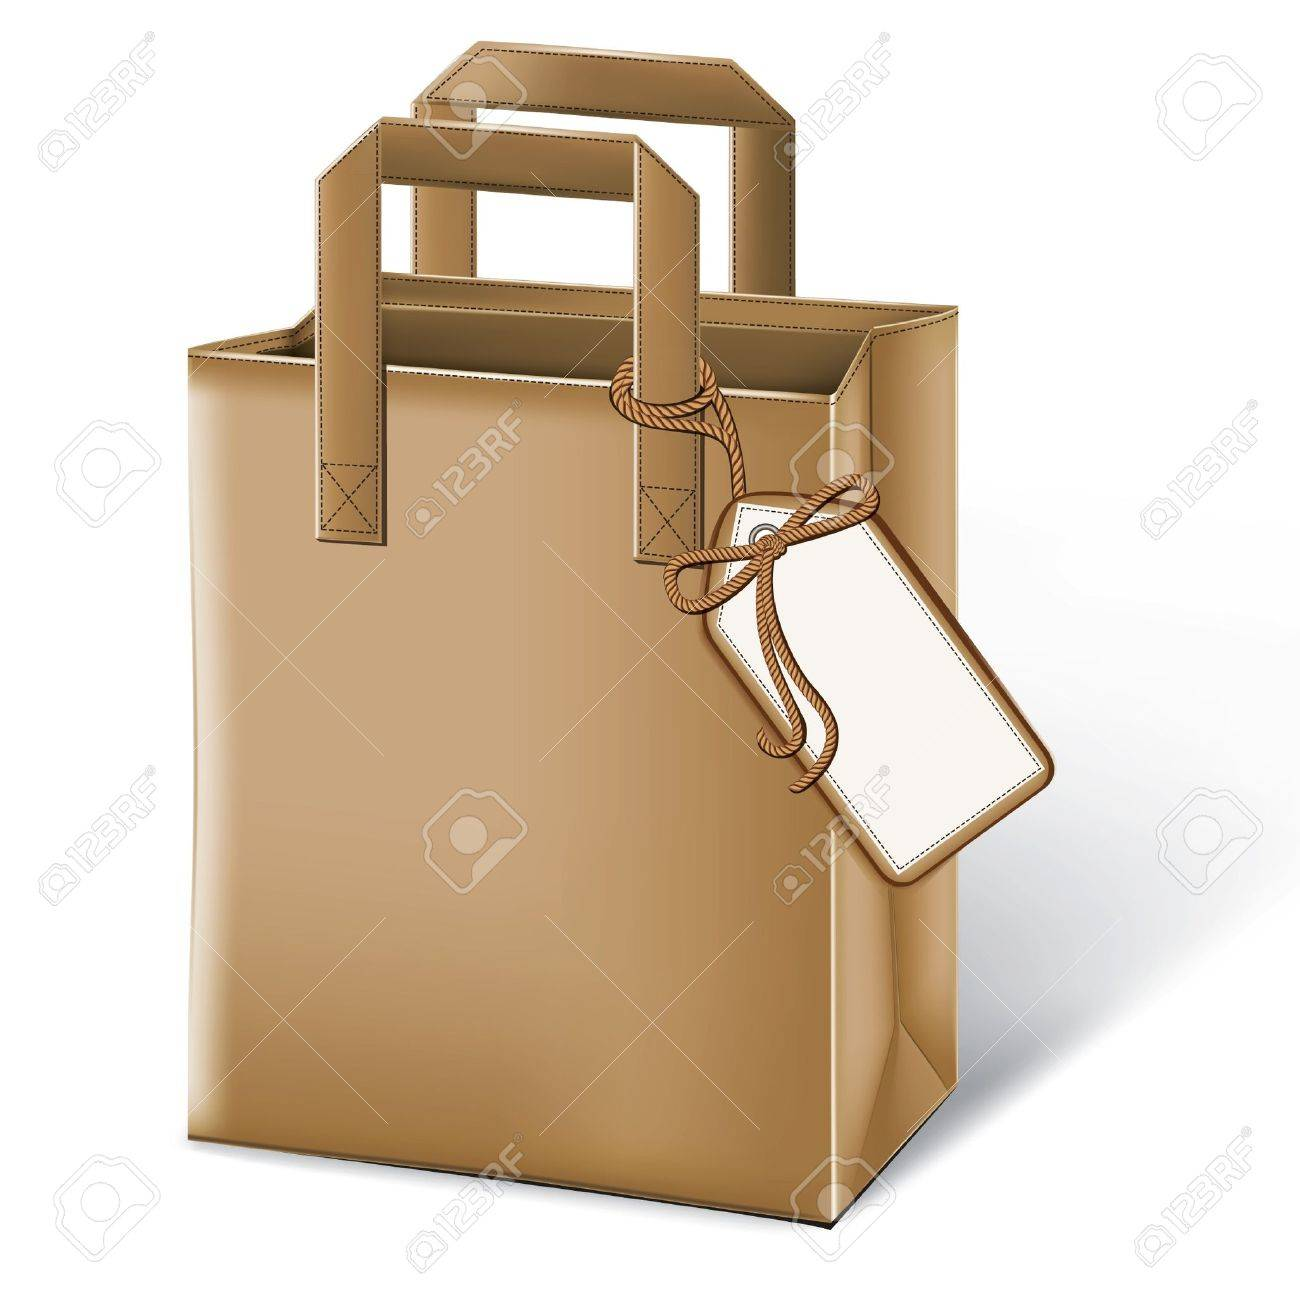 Paper bag vector - Paper Bag With A Label Stock Vector 10993428